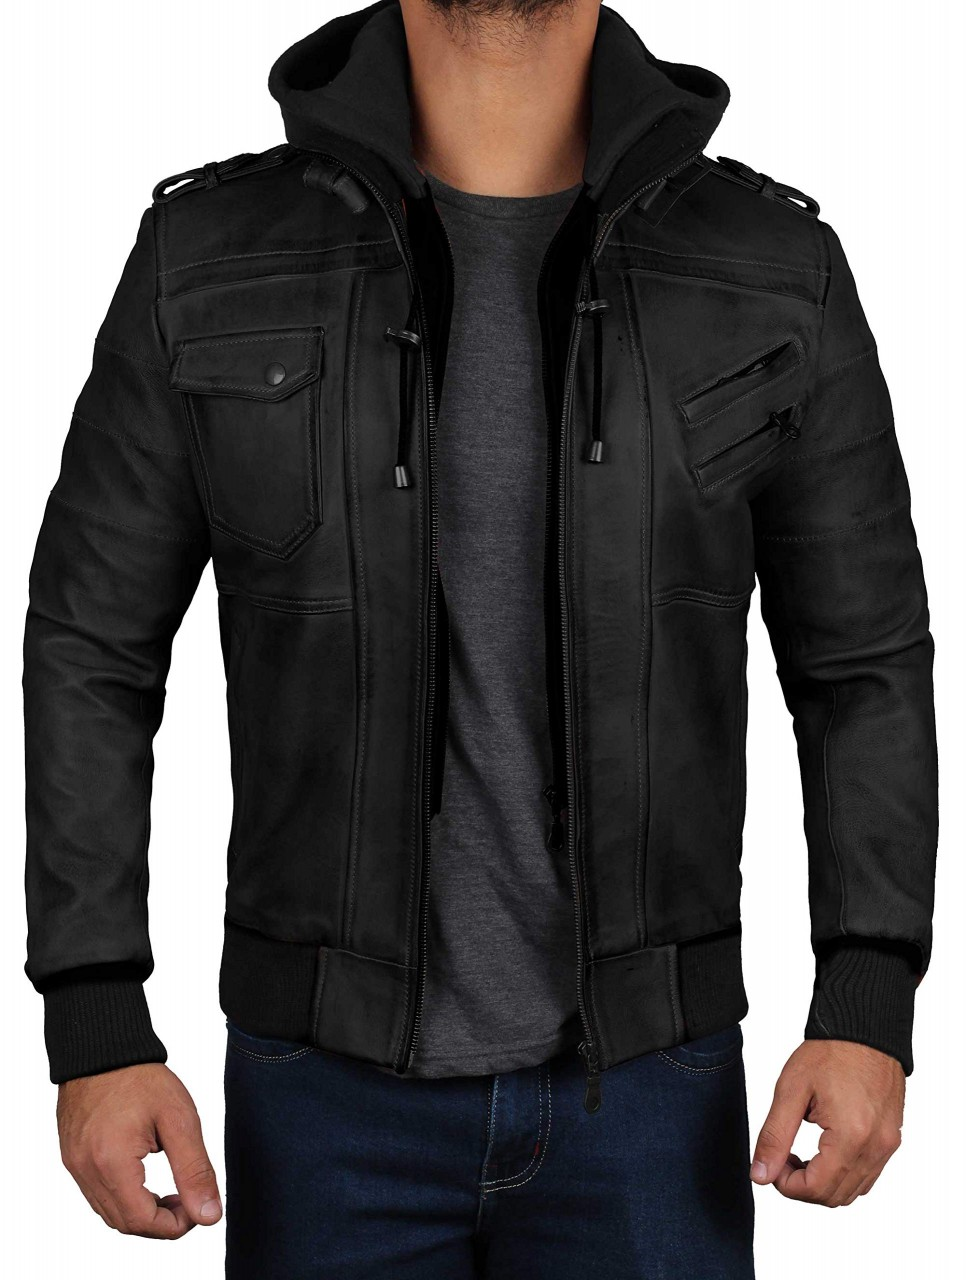 Leather Jacket With Hood Right Jackets Leather Jacket Leather Jacket With Hood Brown Leather Motorcycle Jacket [ 1280 x 966 Pixel ]